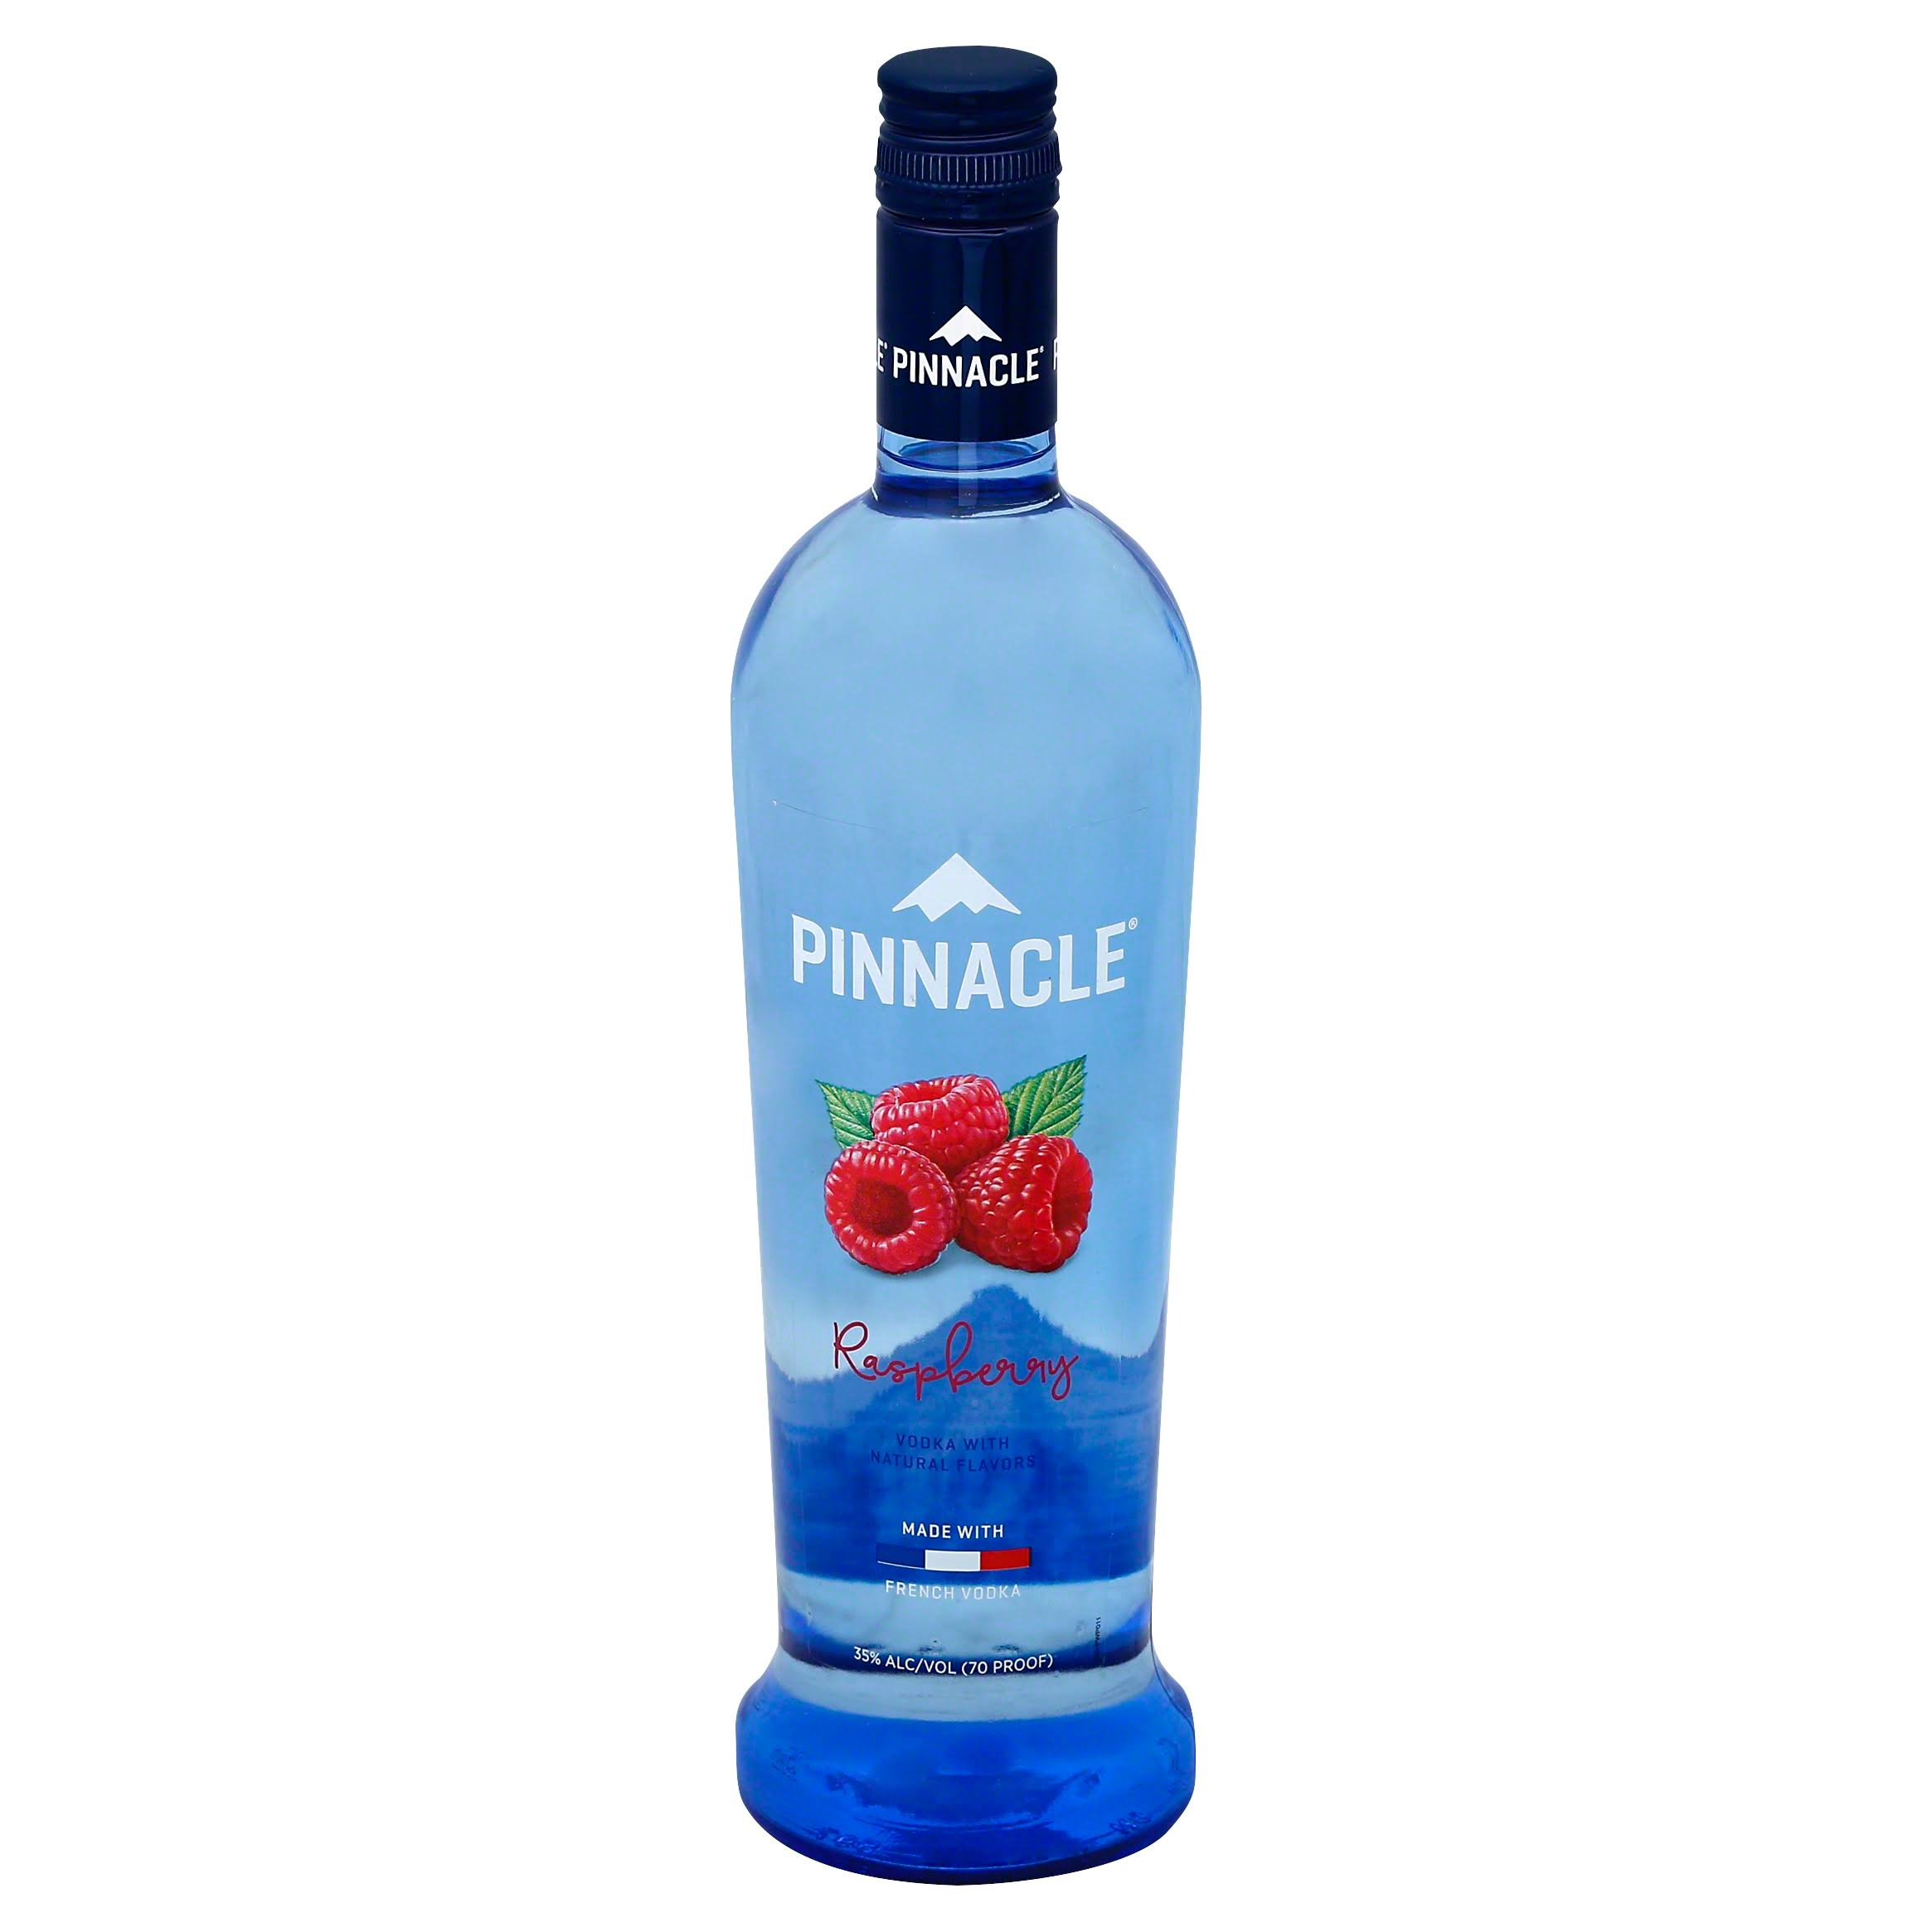 Pinnacle Vodka - Raspberry, 750ml